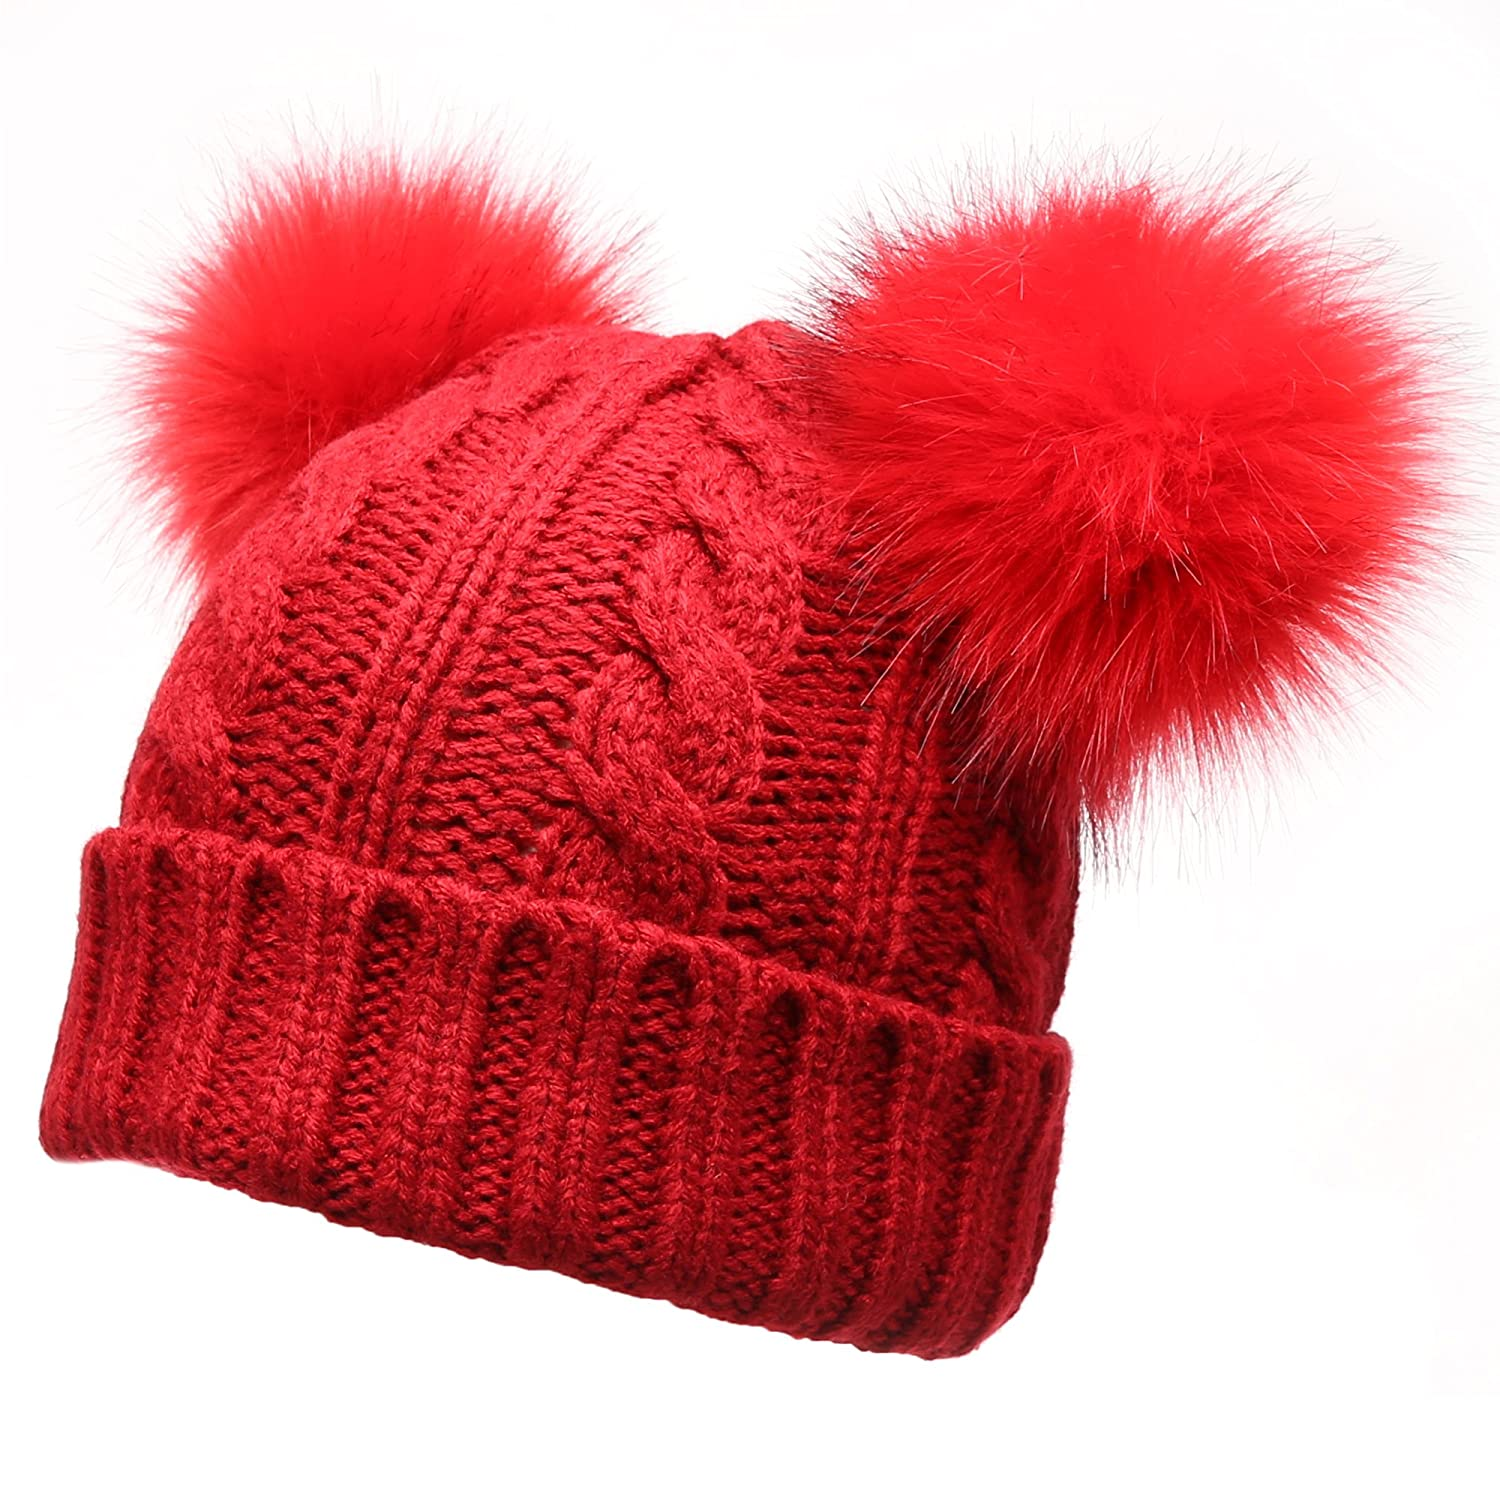 9a379fa78e3 Women s Winter Cable Knitted Faux Fur Double Pom Pom Beanie Hat with Plush  Lining.